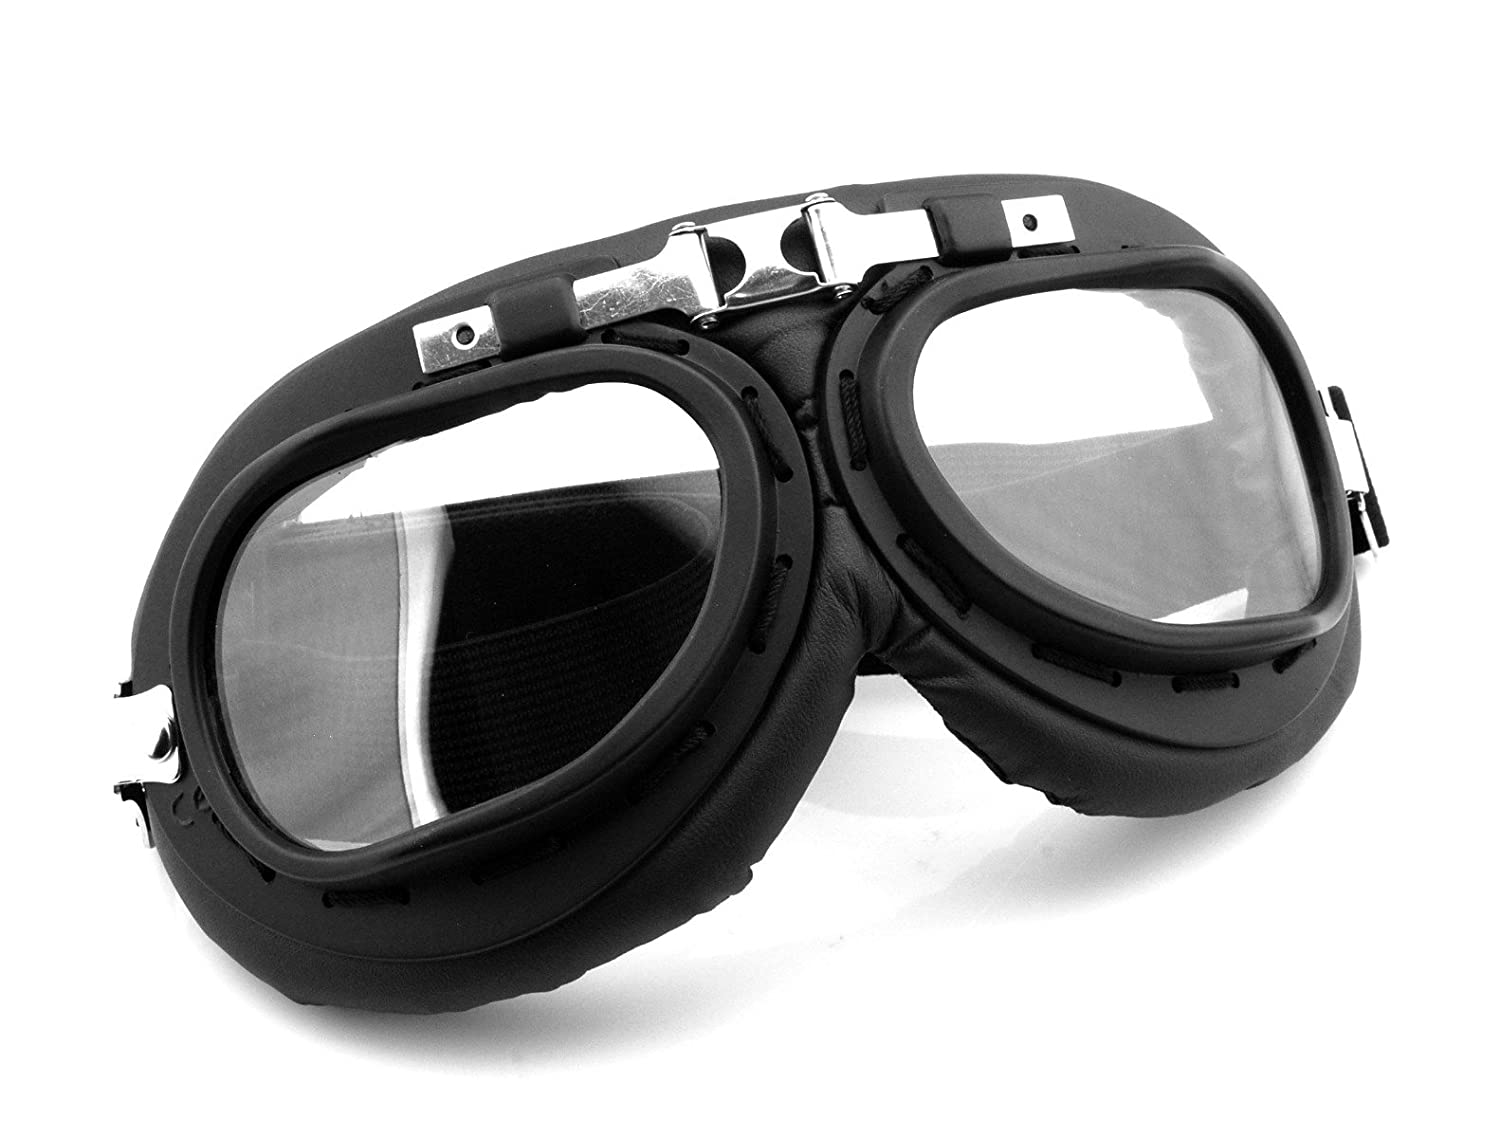 Vintage Motorcycle Racing Parts Clear Lens Riding Helmet Men UV Protection Goggles Glasses For 1983 Honda MVX250F(D) new hot fashion unisex women men hipster vintage retro classic half frame glasses clear lens nerd eyewear 4 colors